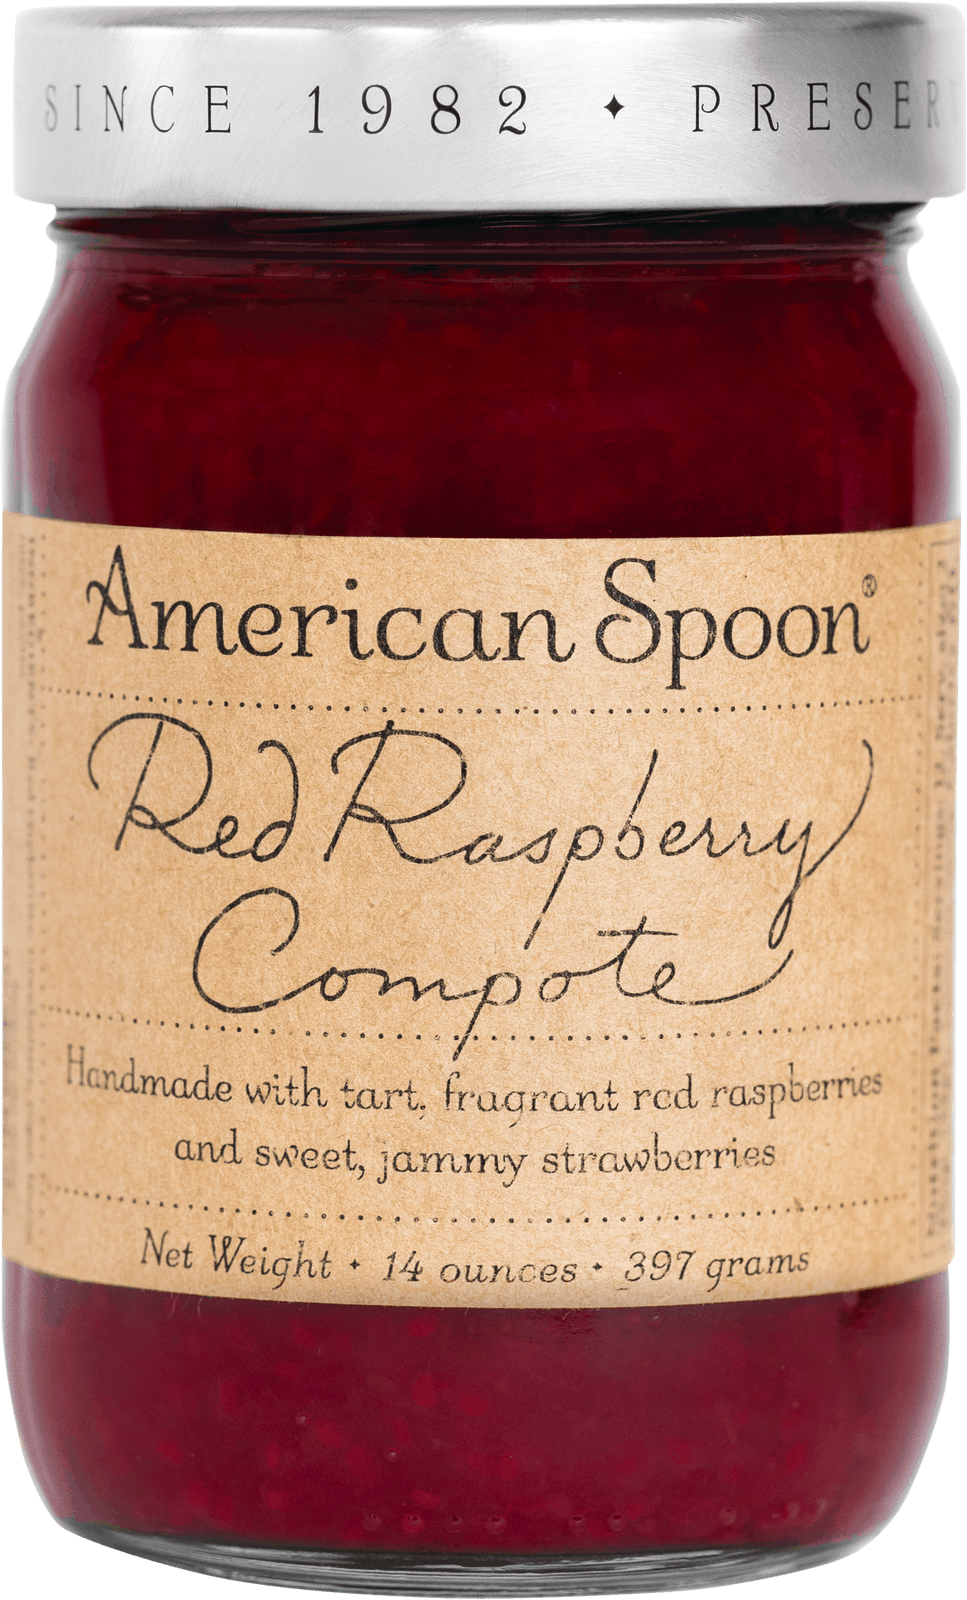 American Spoon Red Raspberry Compote.